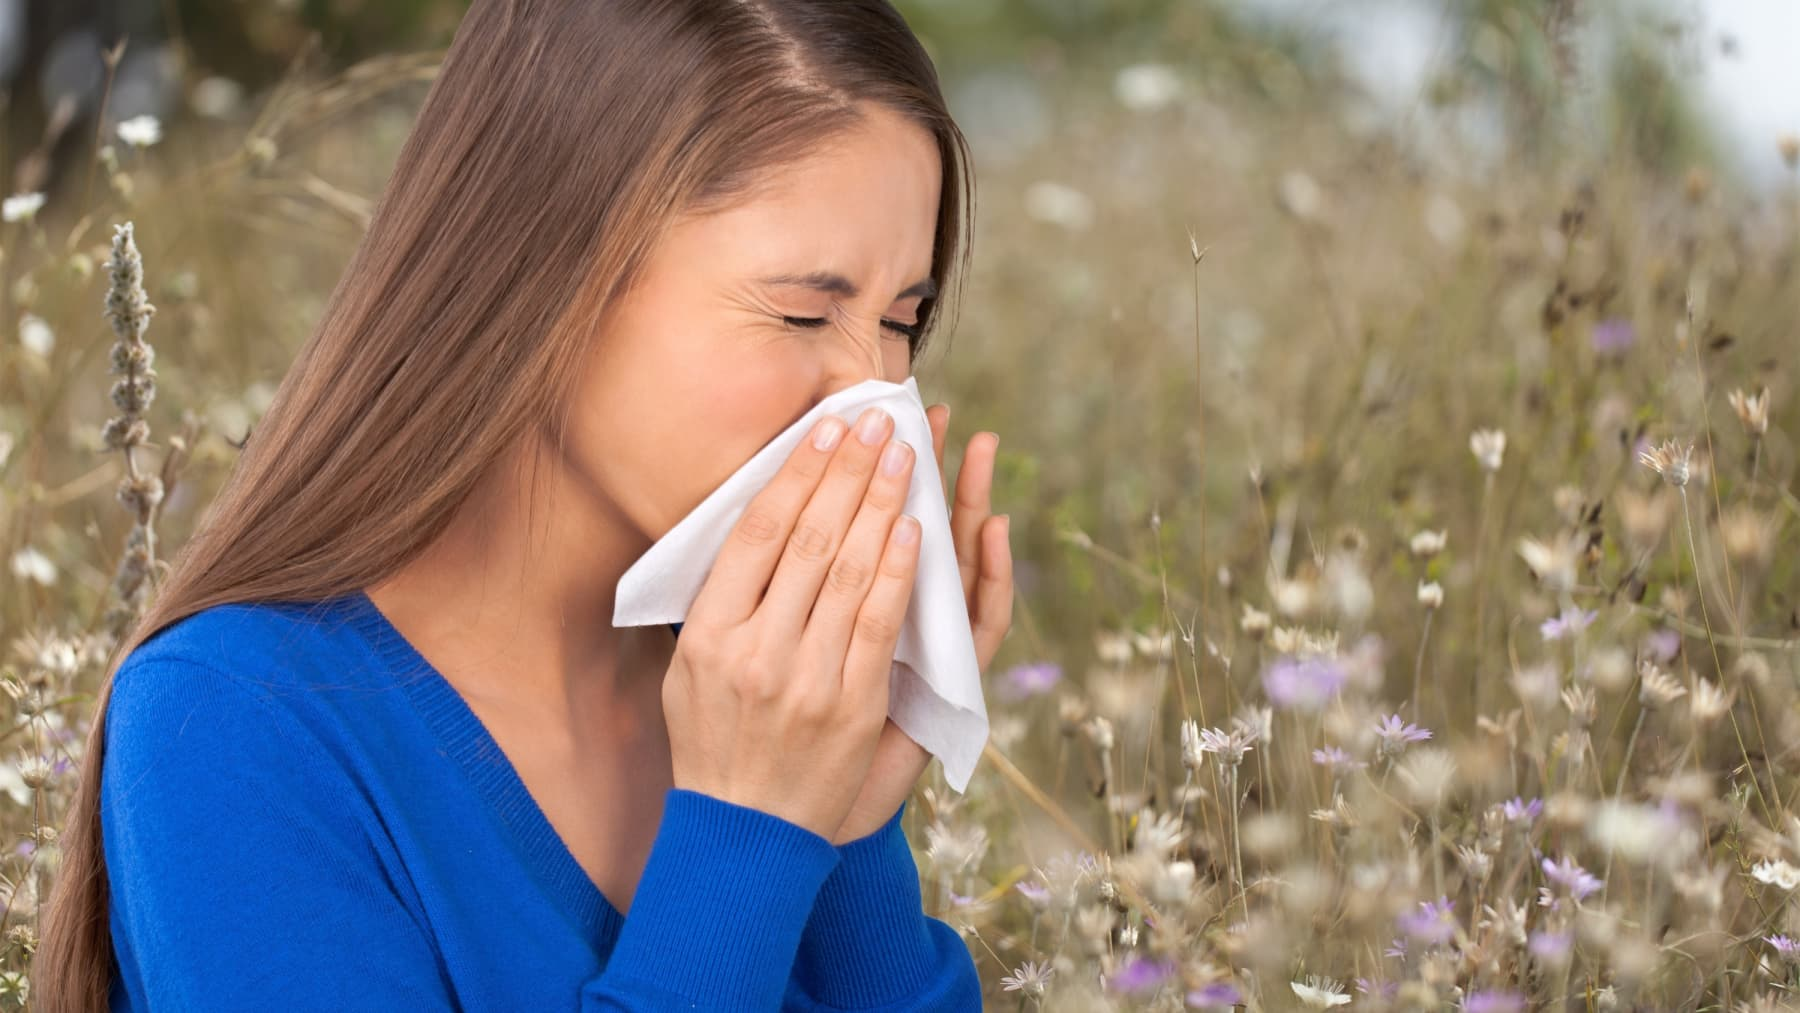 A woman in a blue shirt who has seasonal allergies sneezes into a tissue outside.